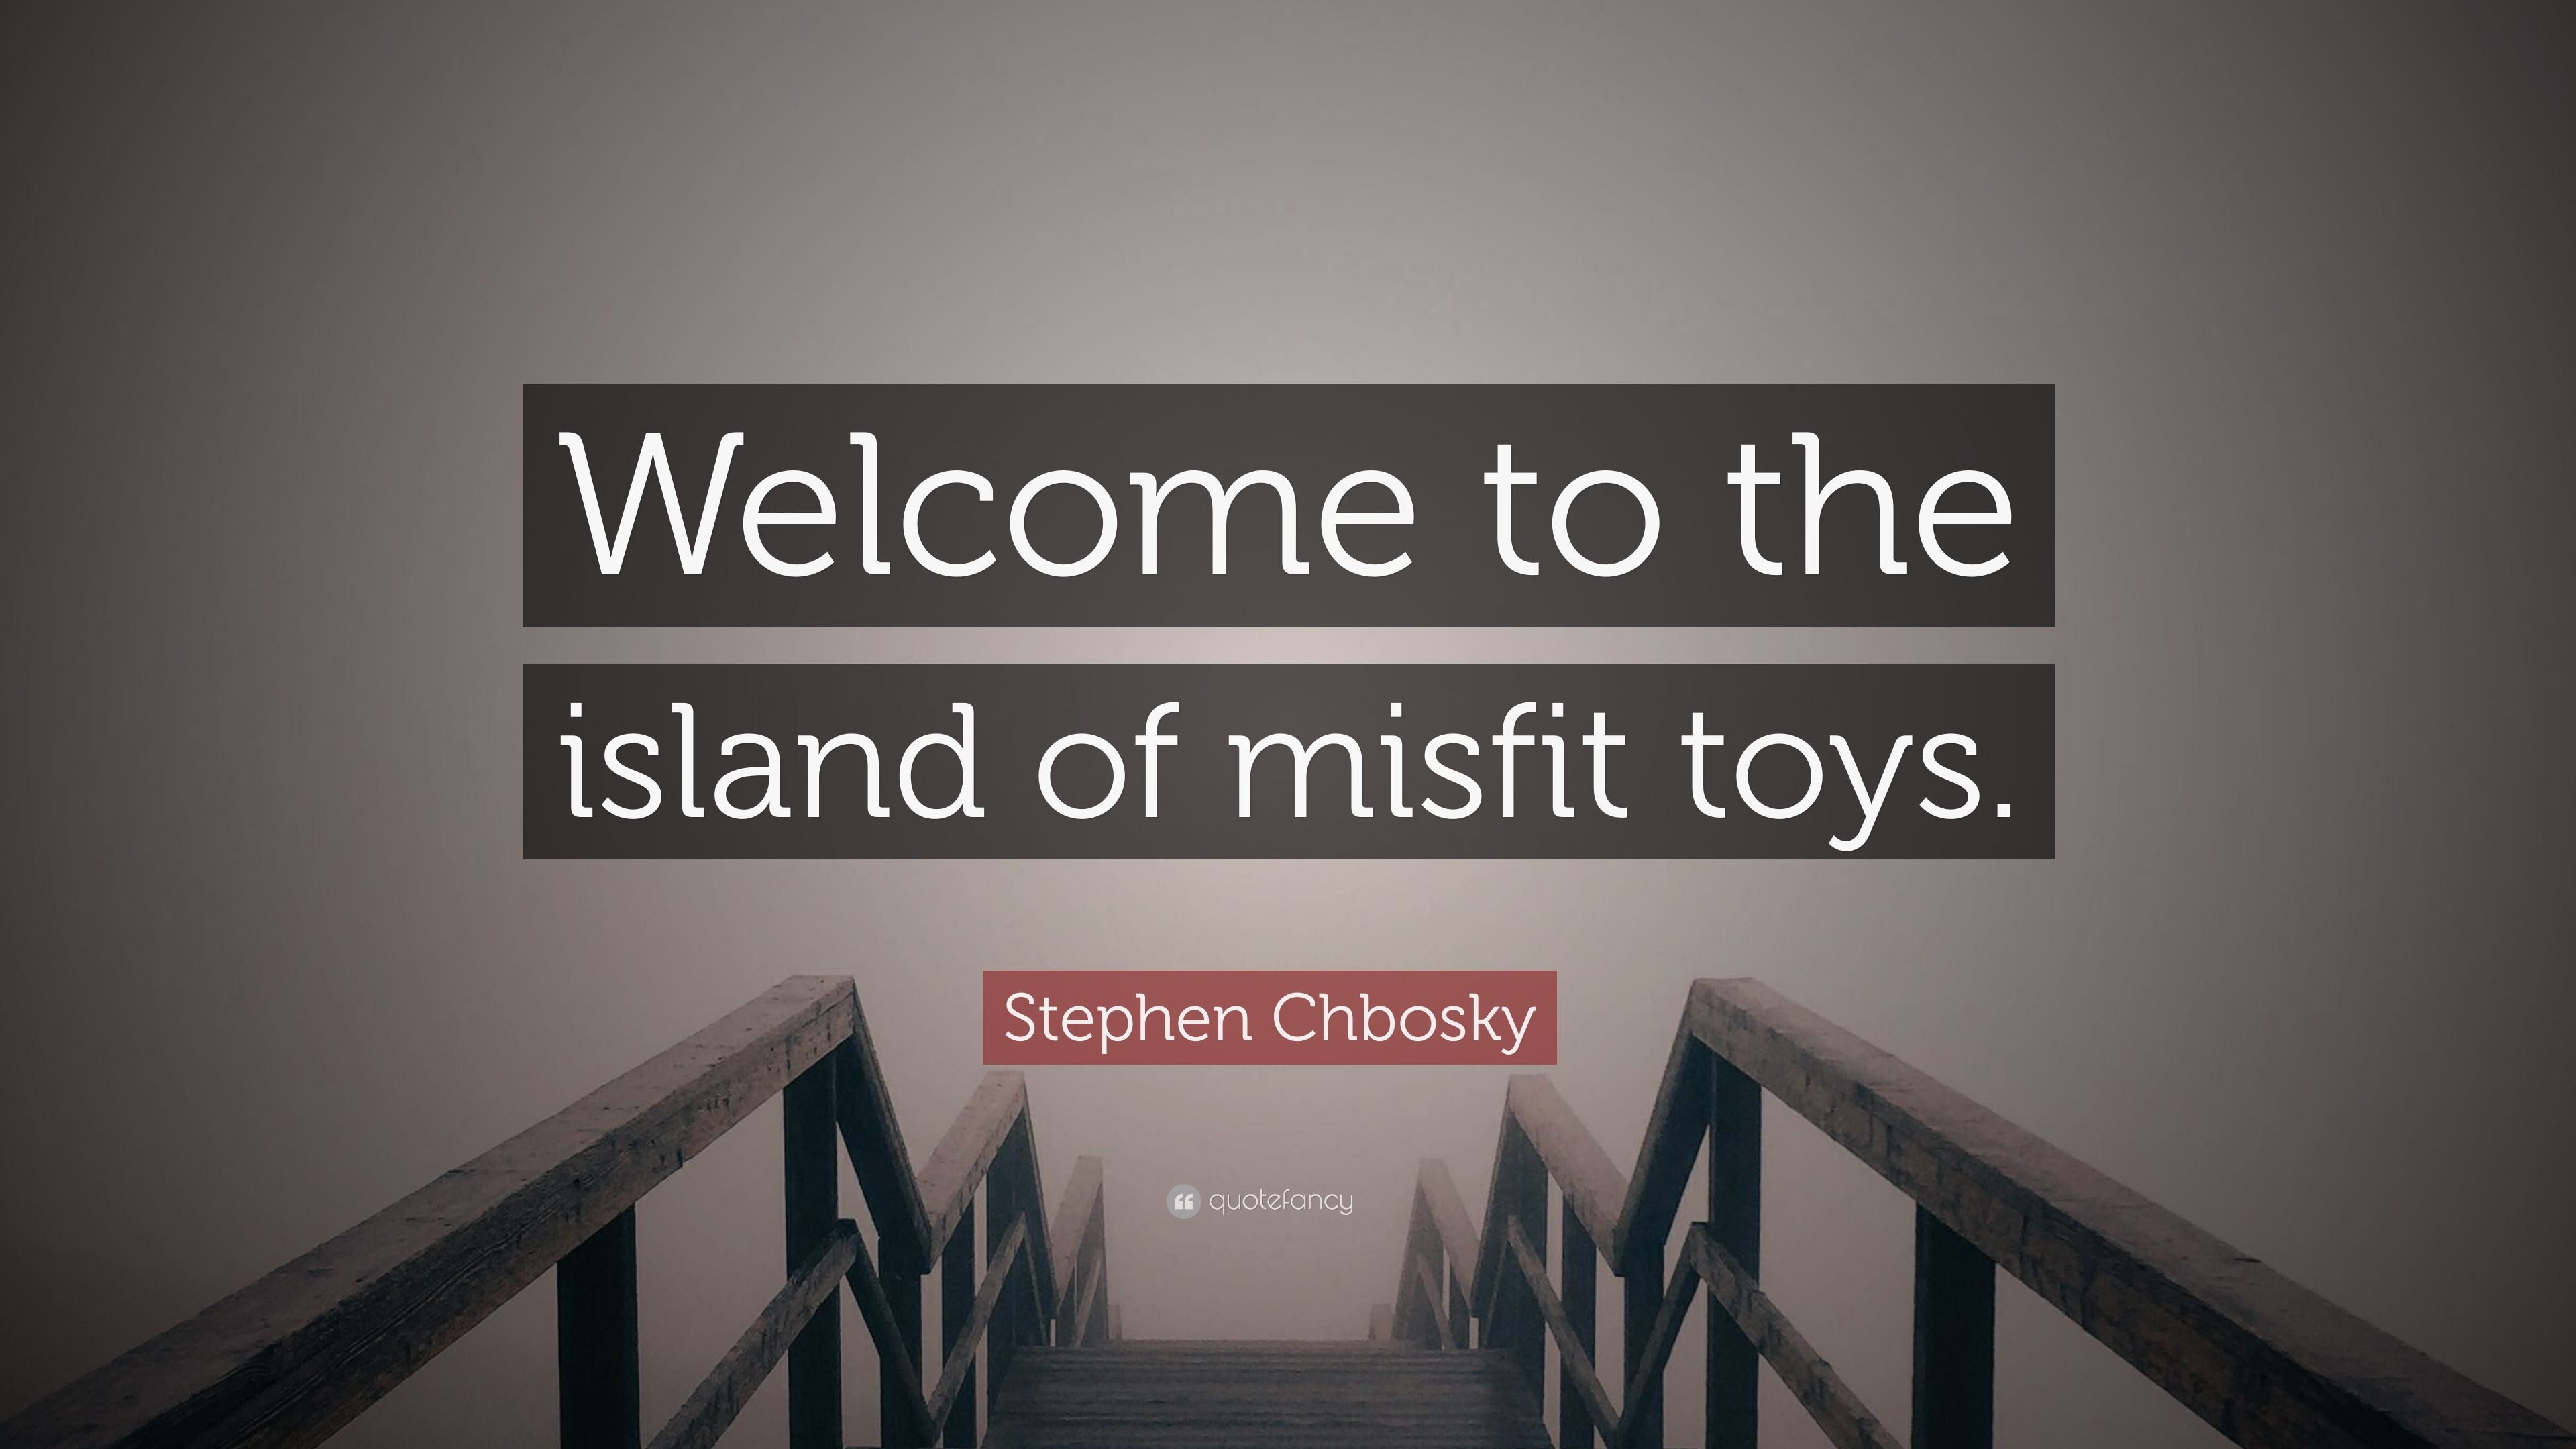 island of misfit toys wallpaper - photo #34